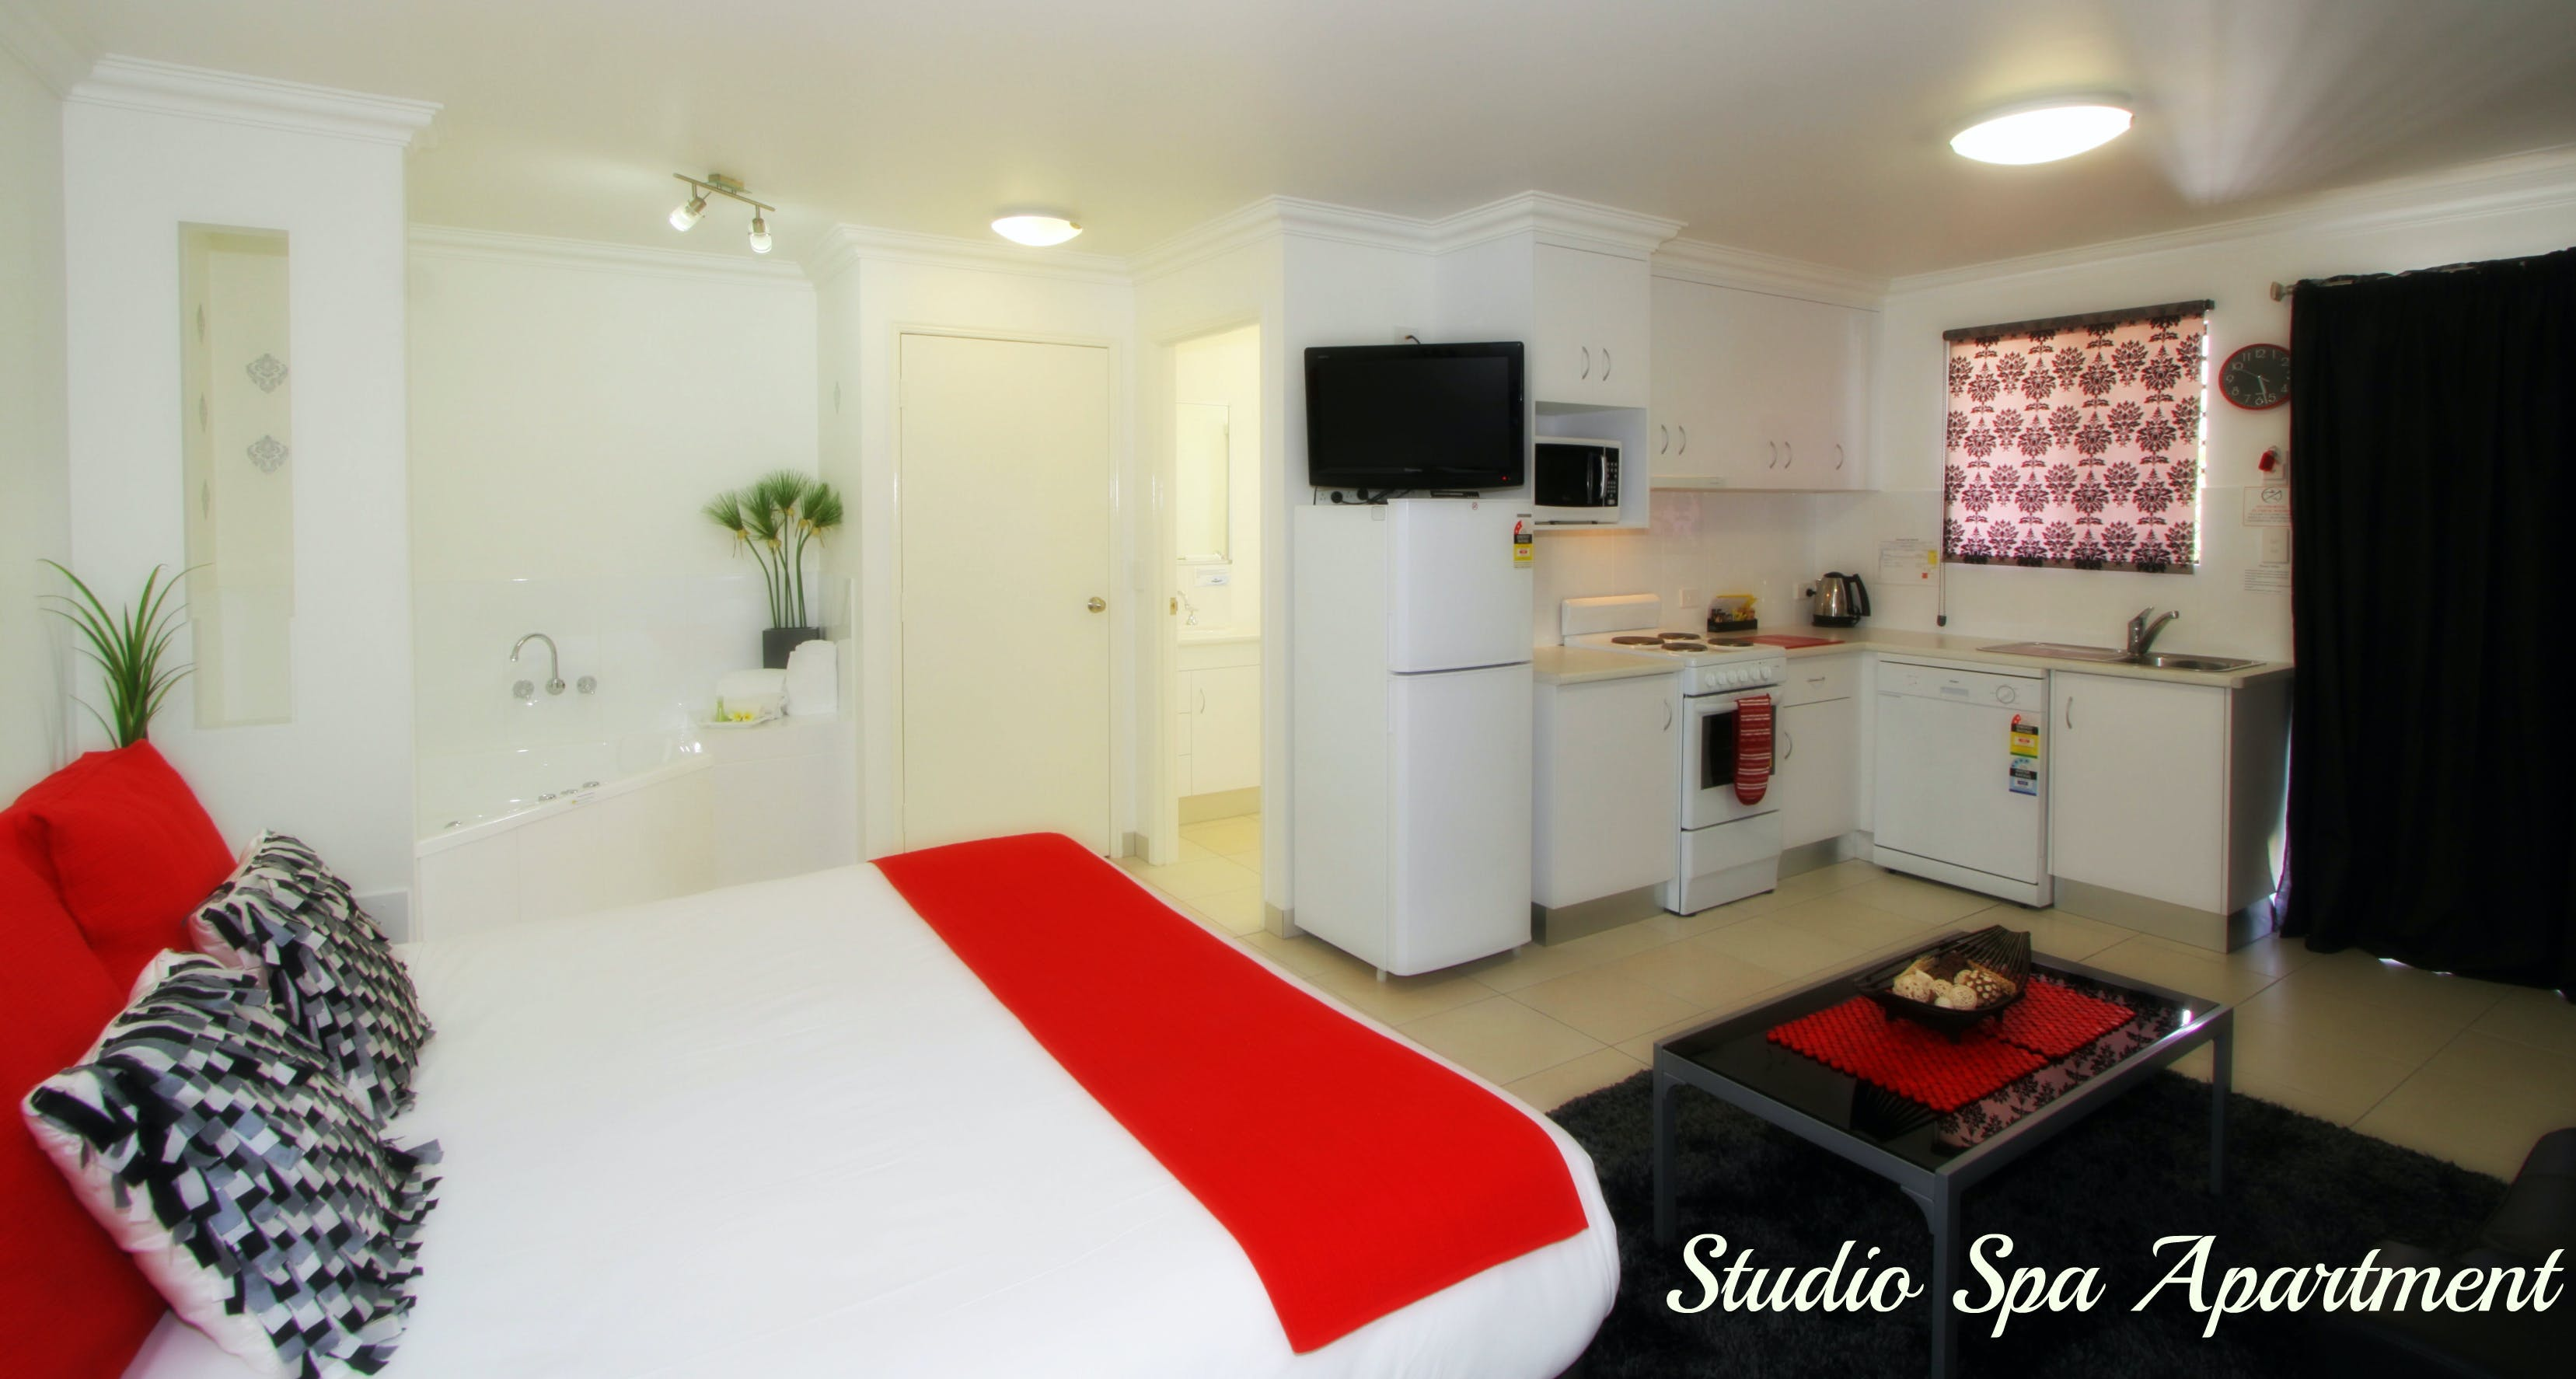 Studio Spa Apartment with one king bed and a corner spa fully self contained with washer and dryer